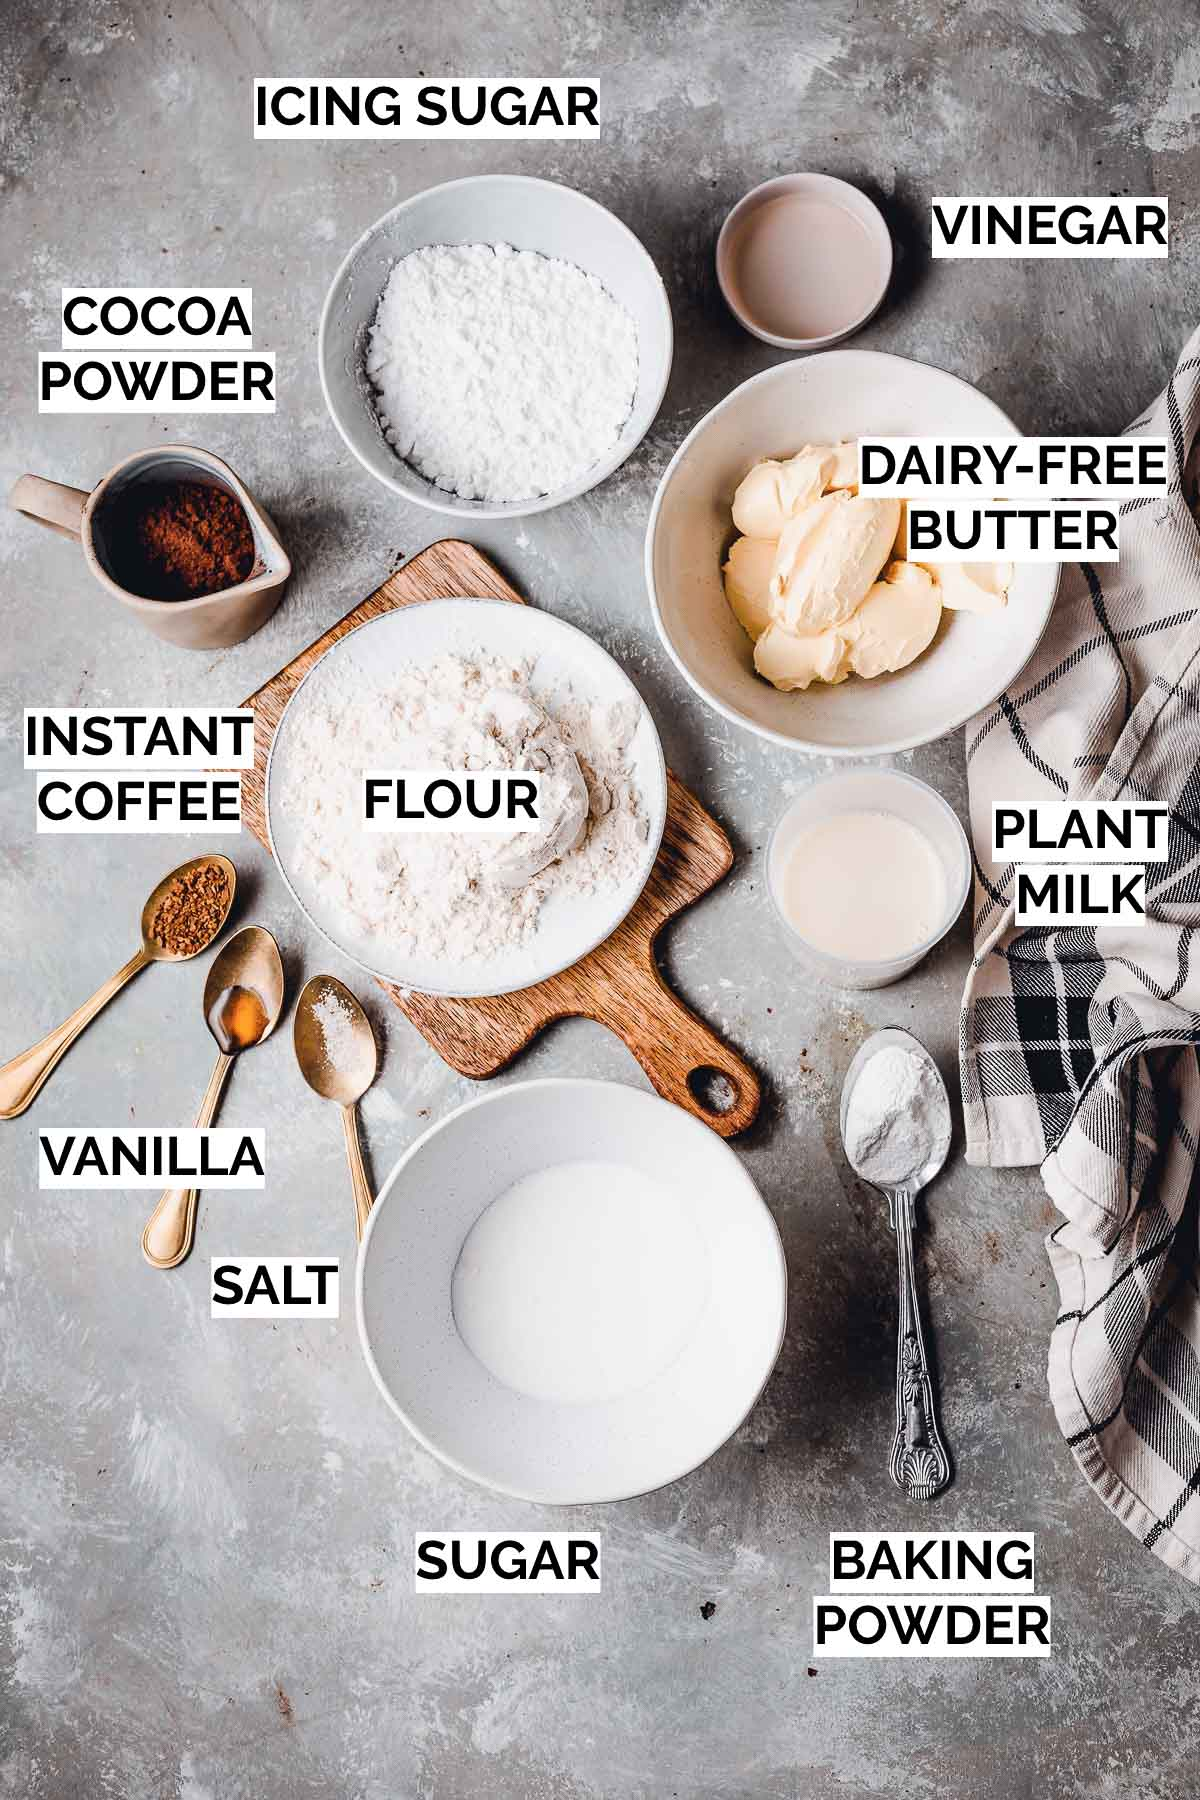 Ingredients needed to make vegan cupcakes on a flat surface.